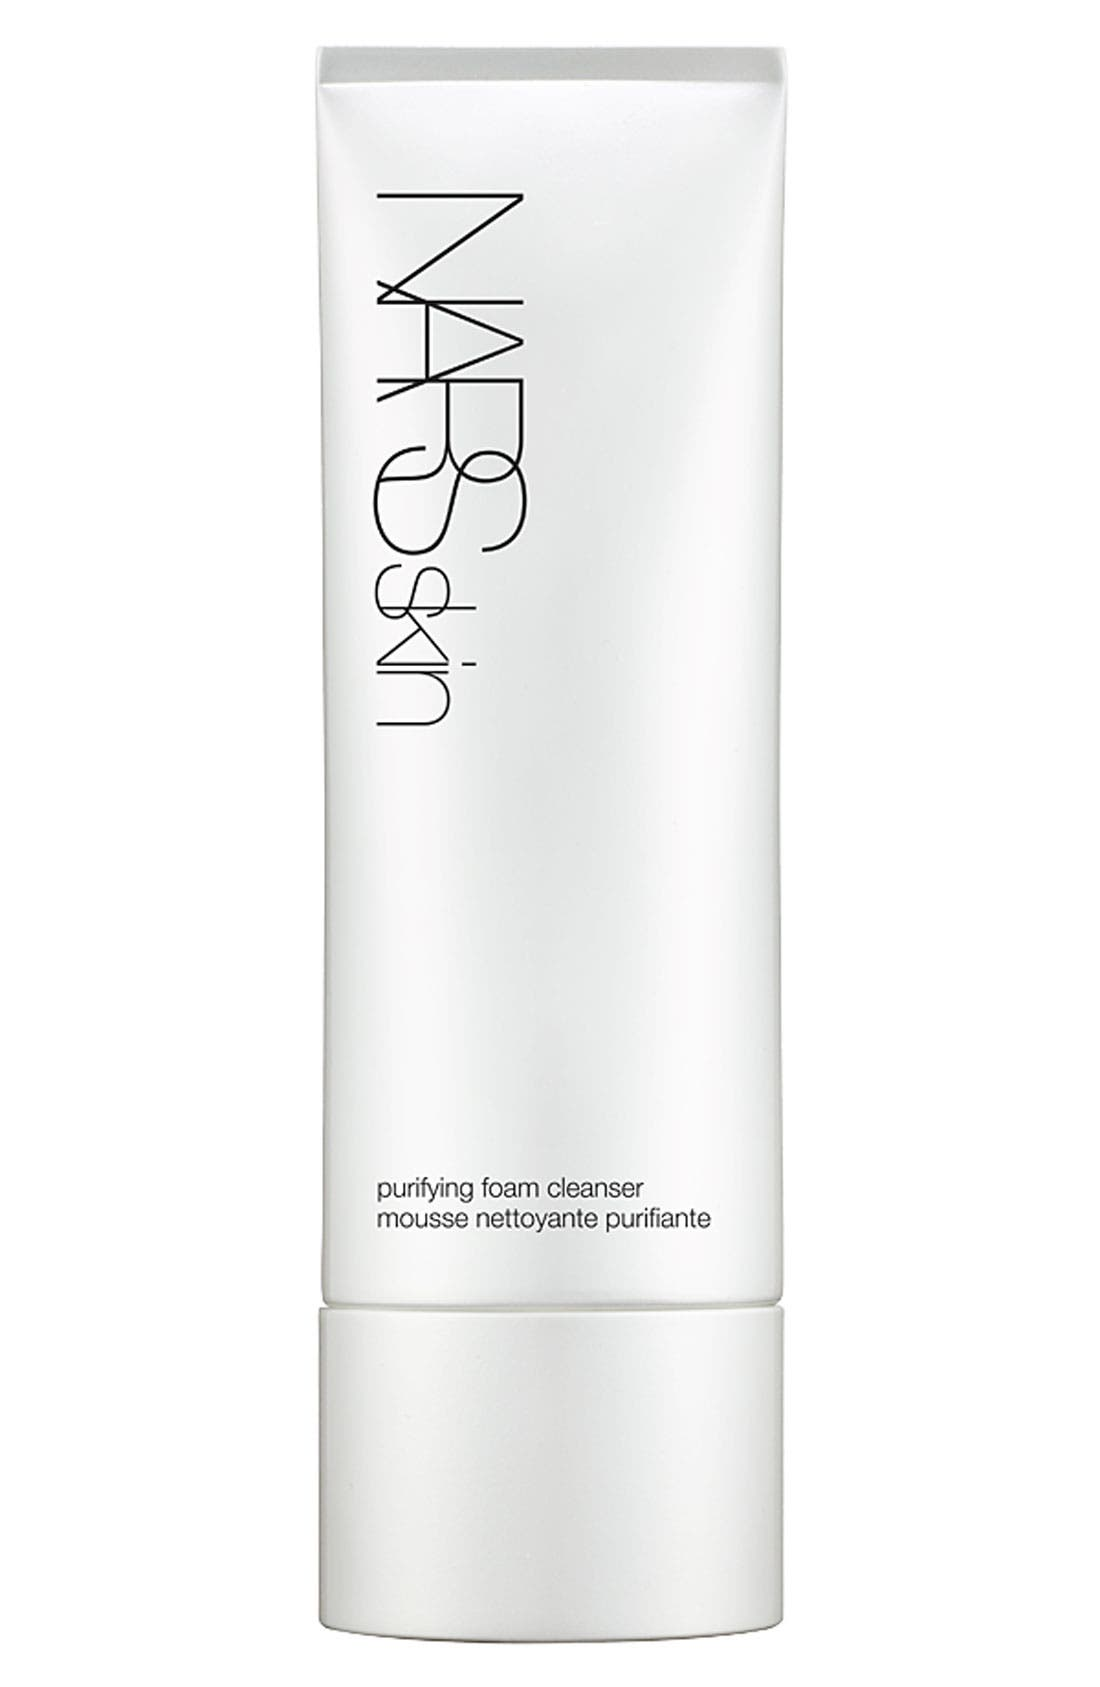 NARS Skin Purifying Foam Cleanser